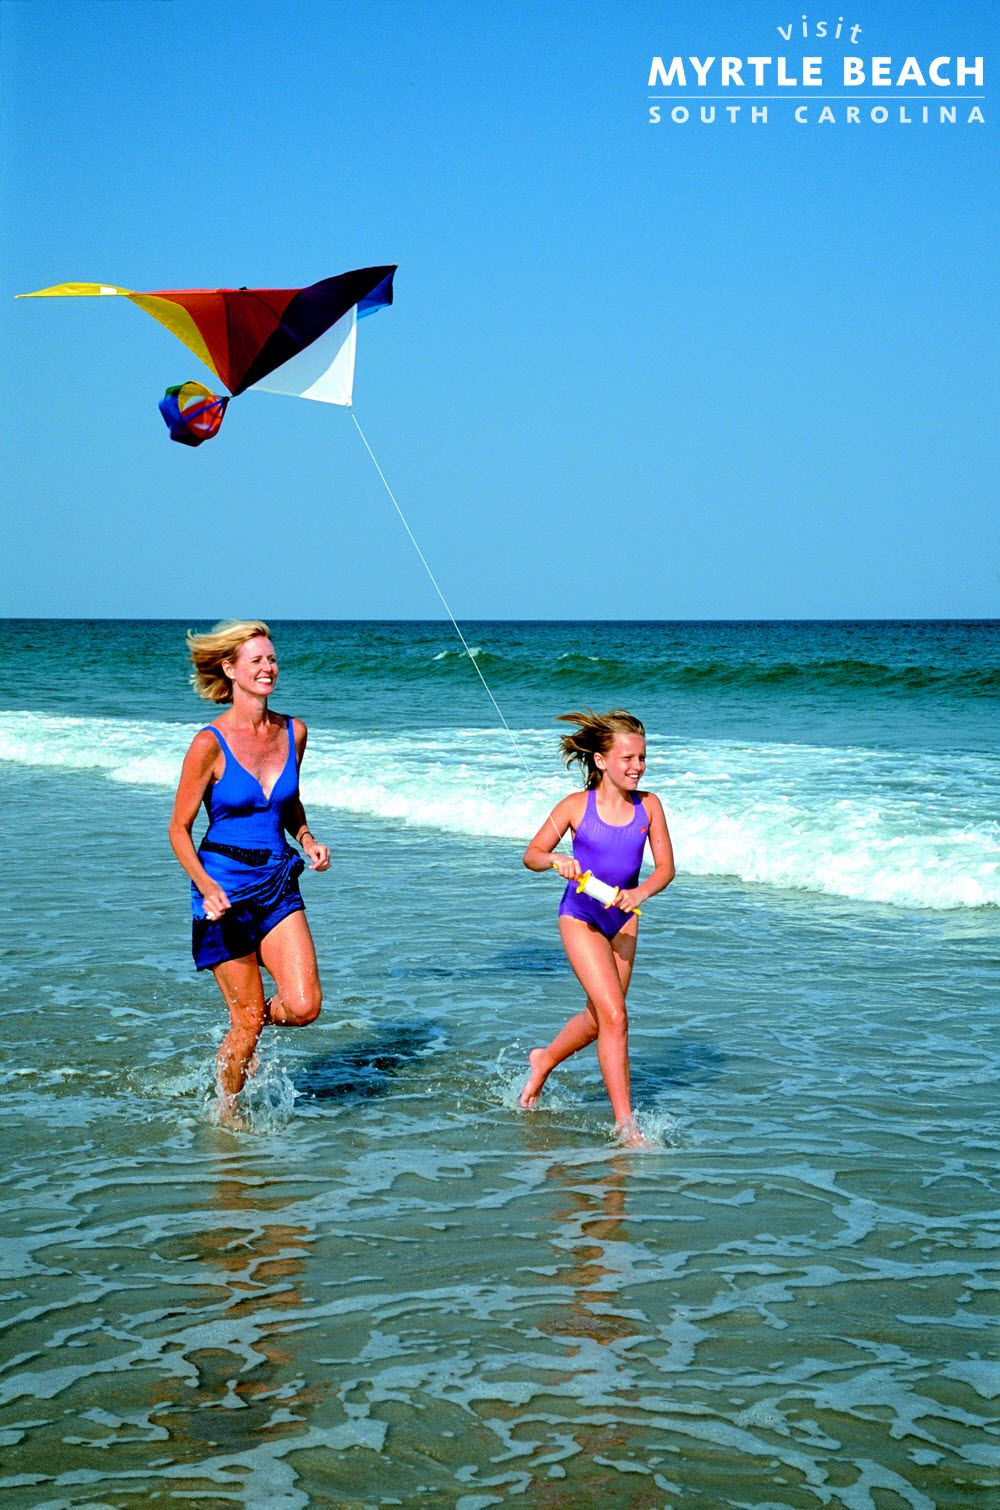 September And October In Myrtle Beach Are Known For Gorgeous Weather Warmer Ocean Waters